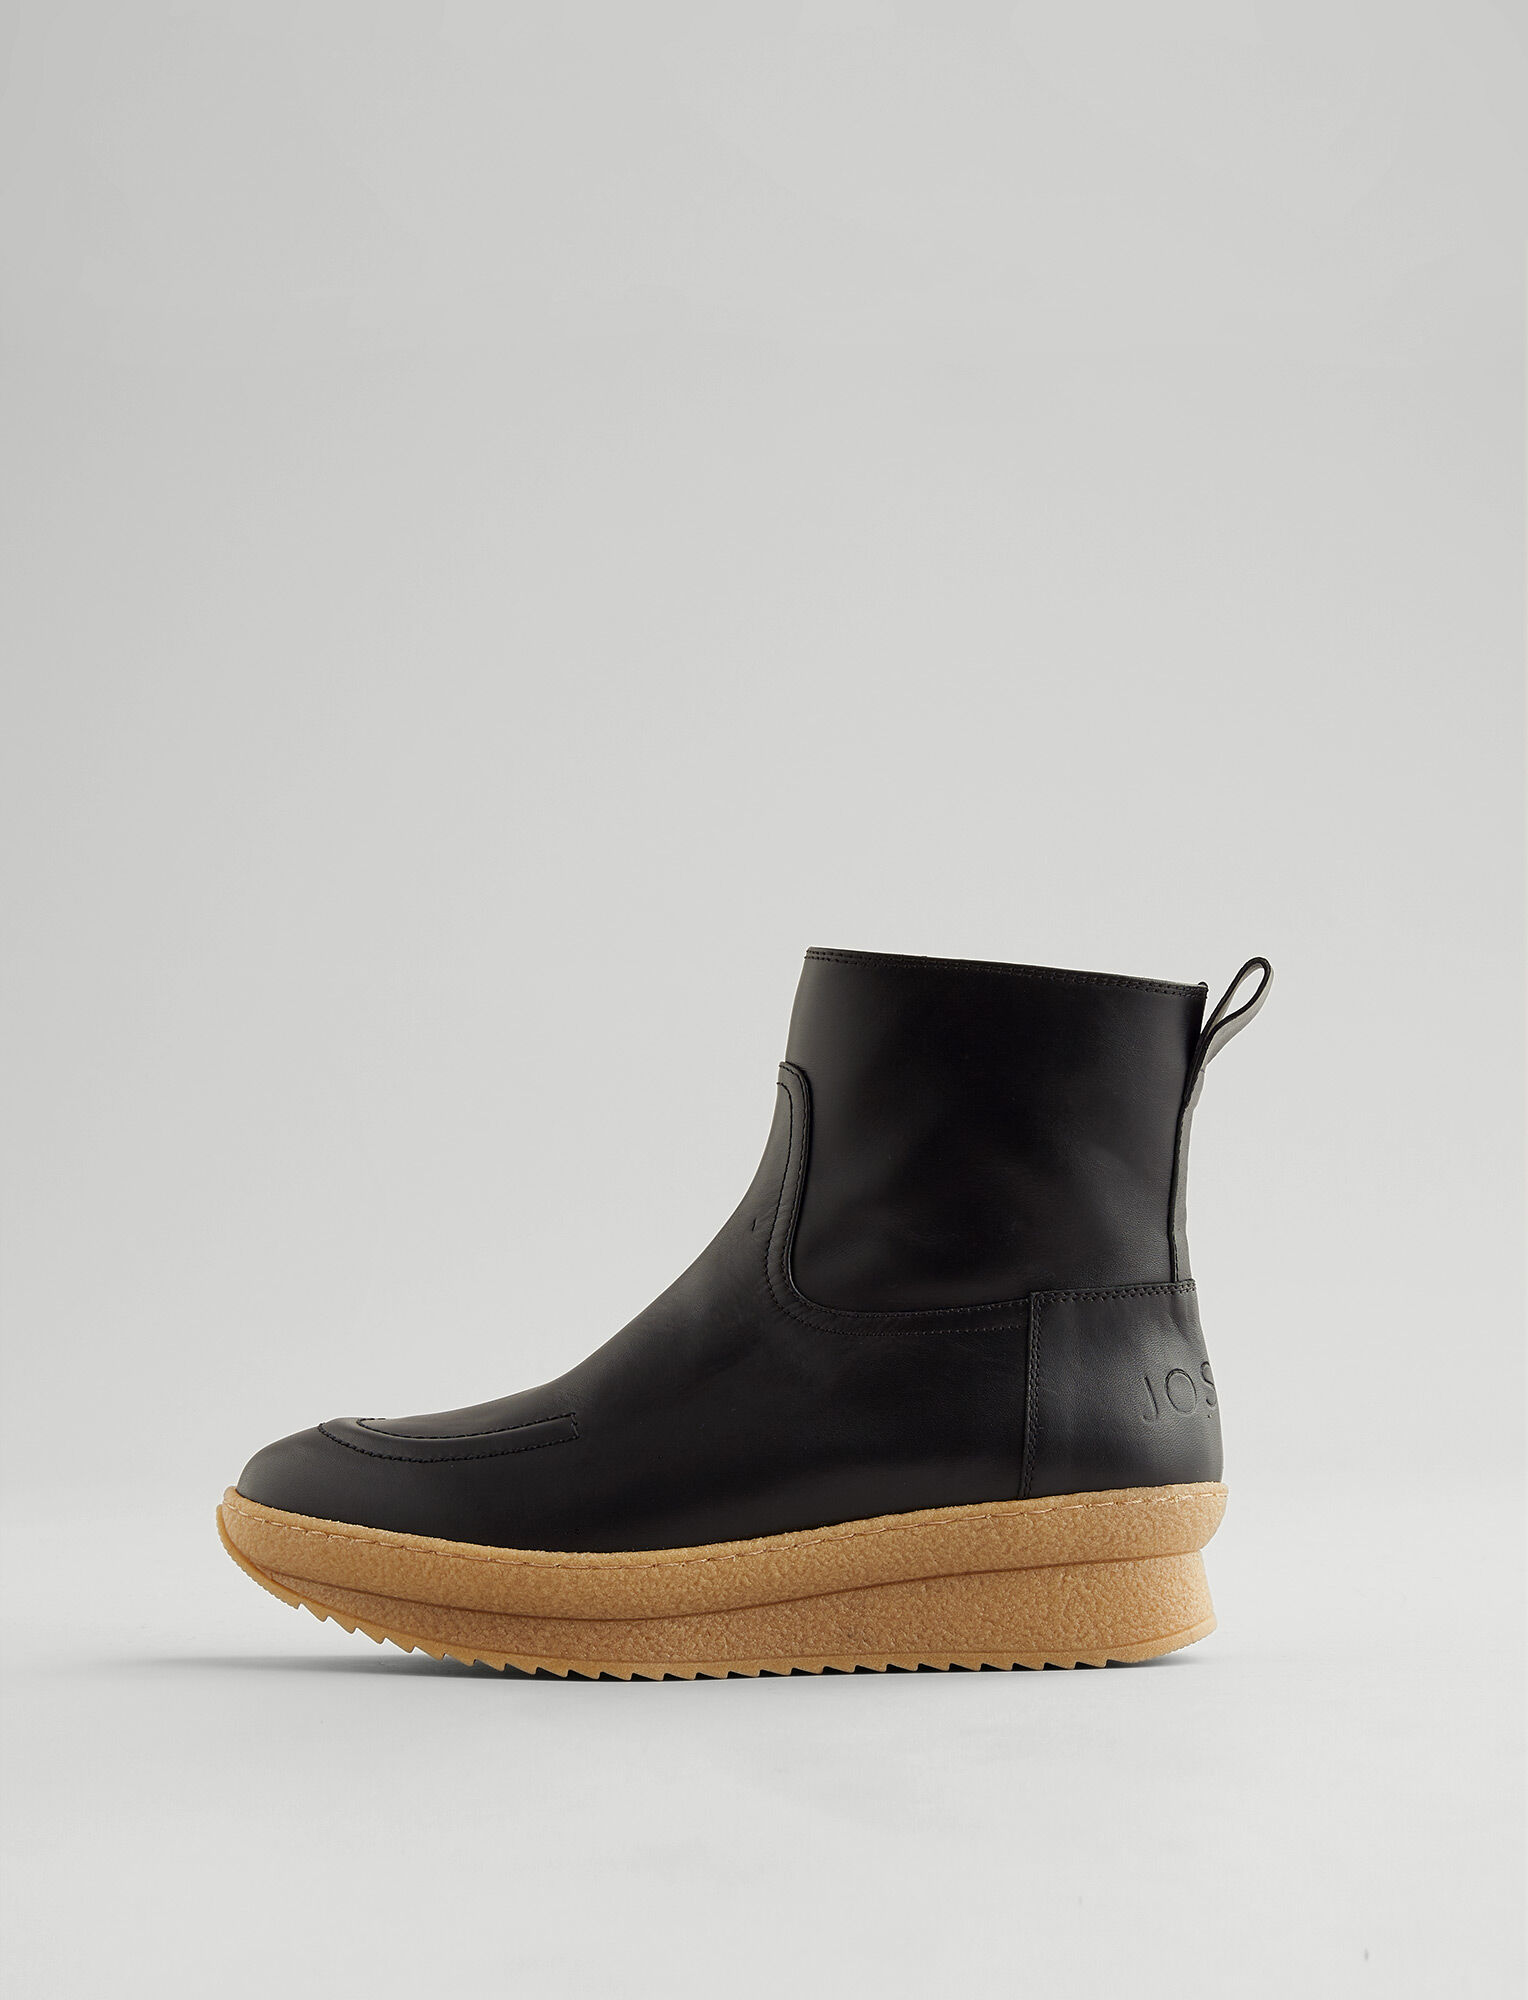 Joseph, New Eva Mugello Boot, in BLACK